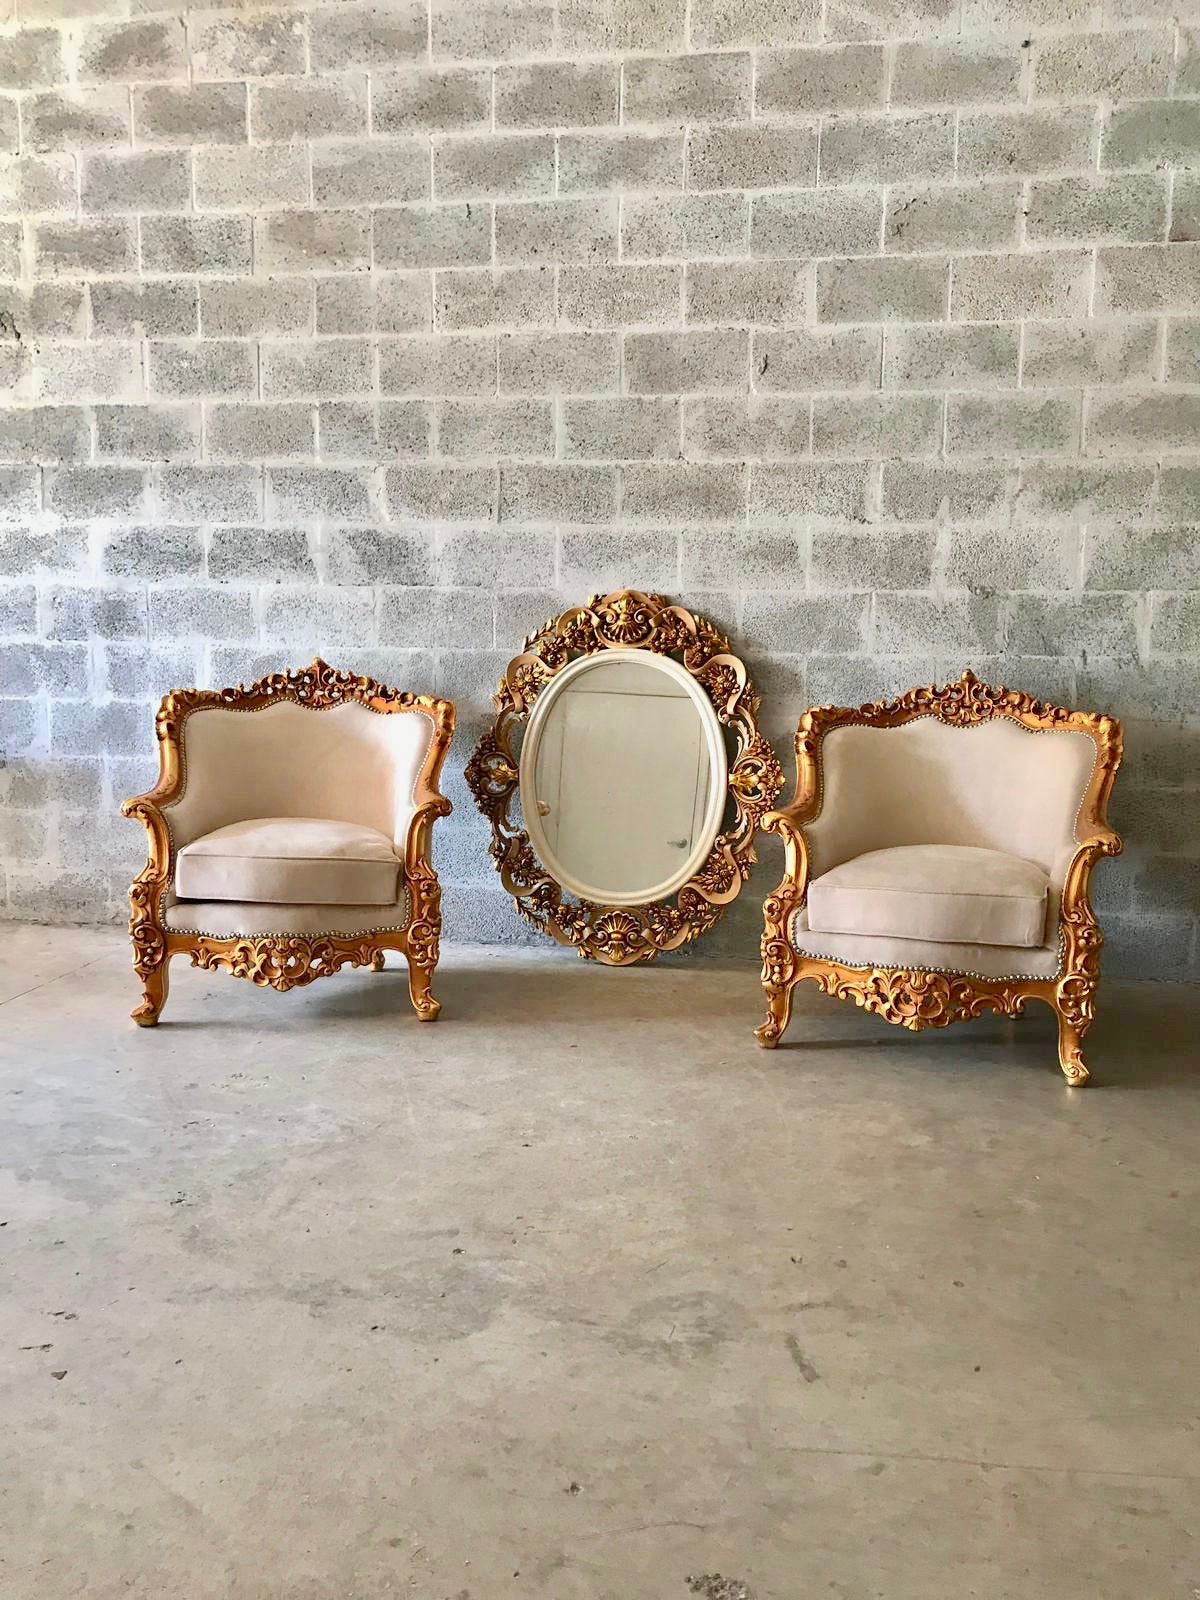 Pleasant Baroque Bergere Beige Chair Throne Chair 2 Available Matching Sofa Creme Suede Furniture Throne Sofa Throne Chair Refinish French Chair Gmtry Best Dining Table And Chair Ideas Images Gmtryco